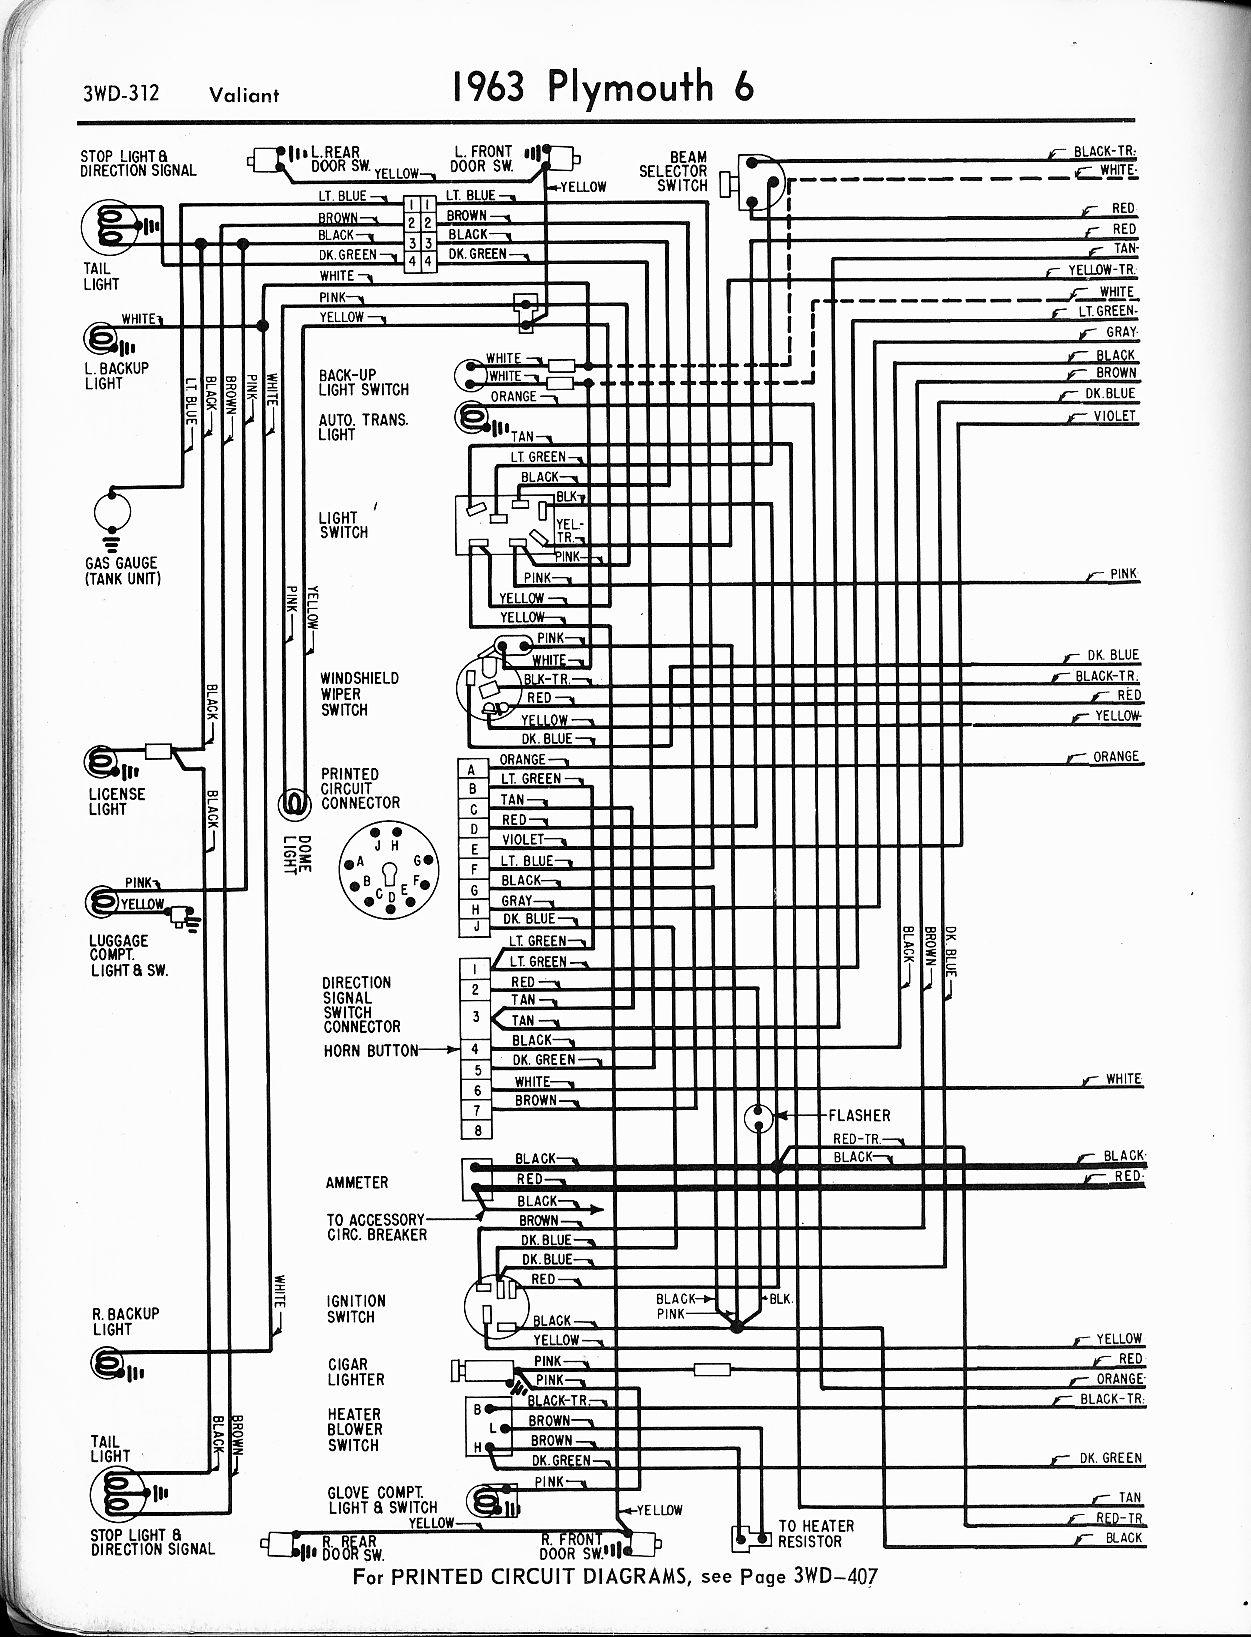 1966 chrysler 300 engine wiring diagram yz 3639  wiring diagram 1991 chrysler new yorker get free image  wiring diagram 1991 chrysler new yorker